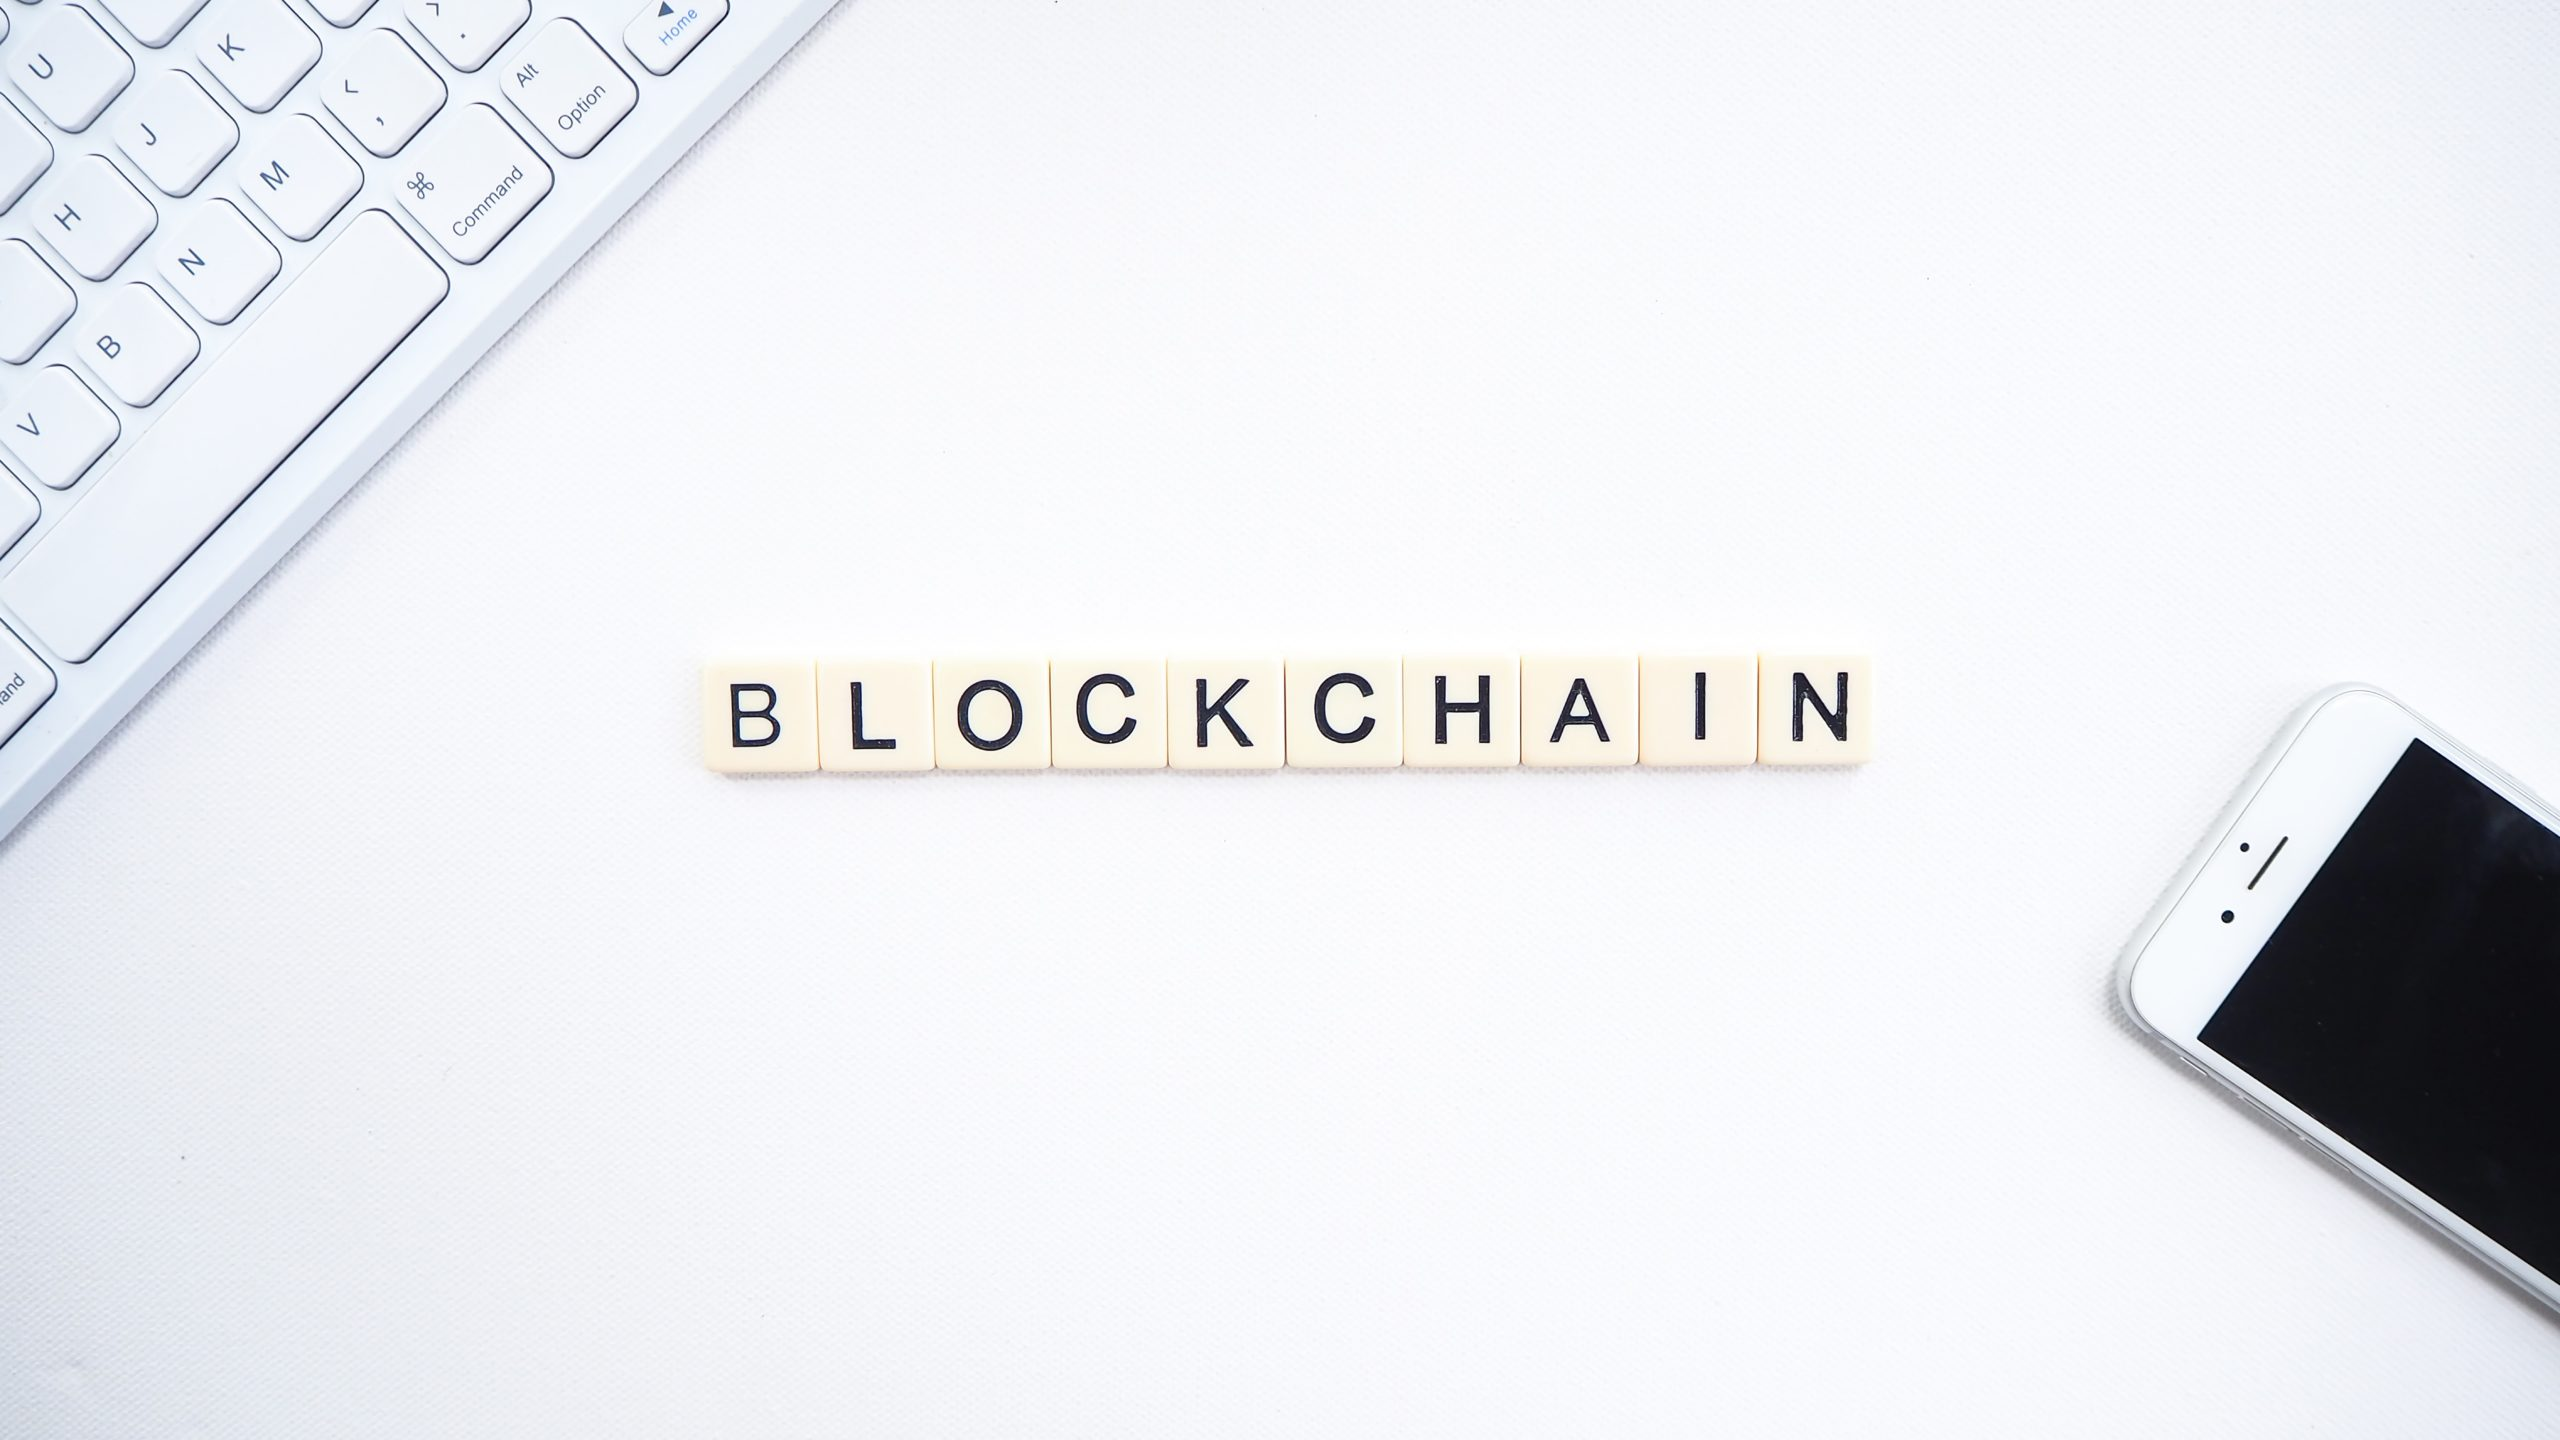 blockchain-digitale-zukunft-mybusinessfuture